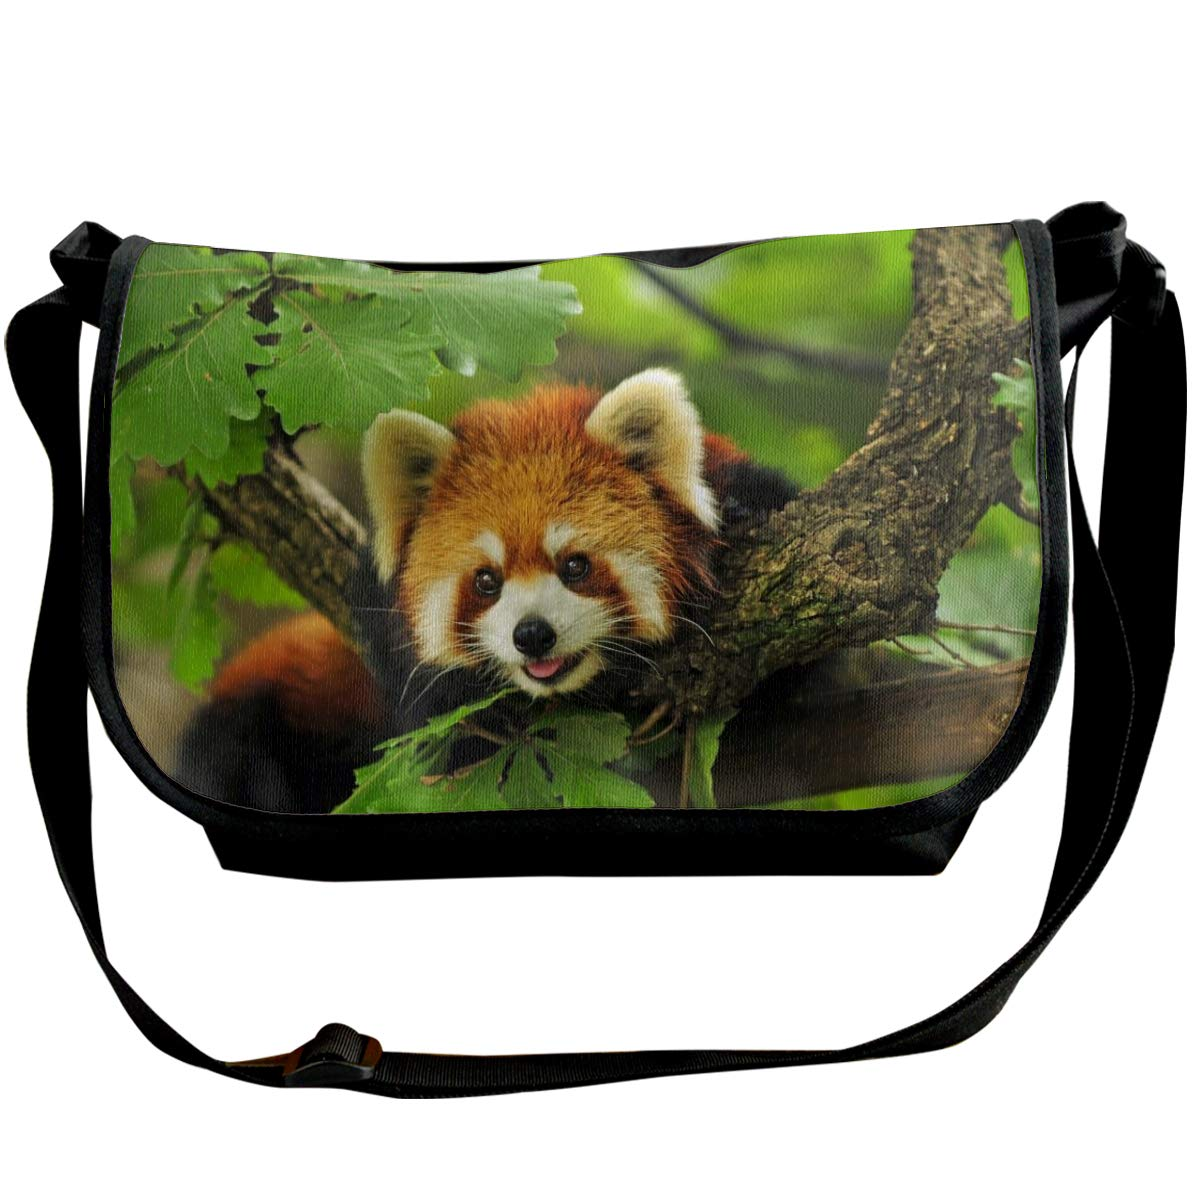 Red Panda Of Nepal Unisex Crossbody Single Shoulder Bag Messenger Bag